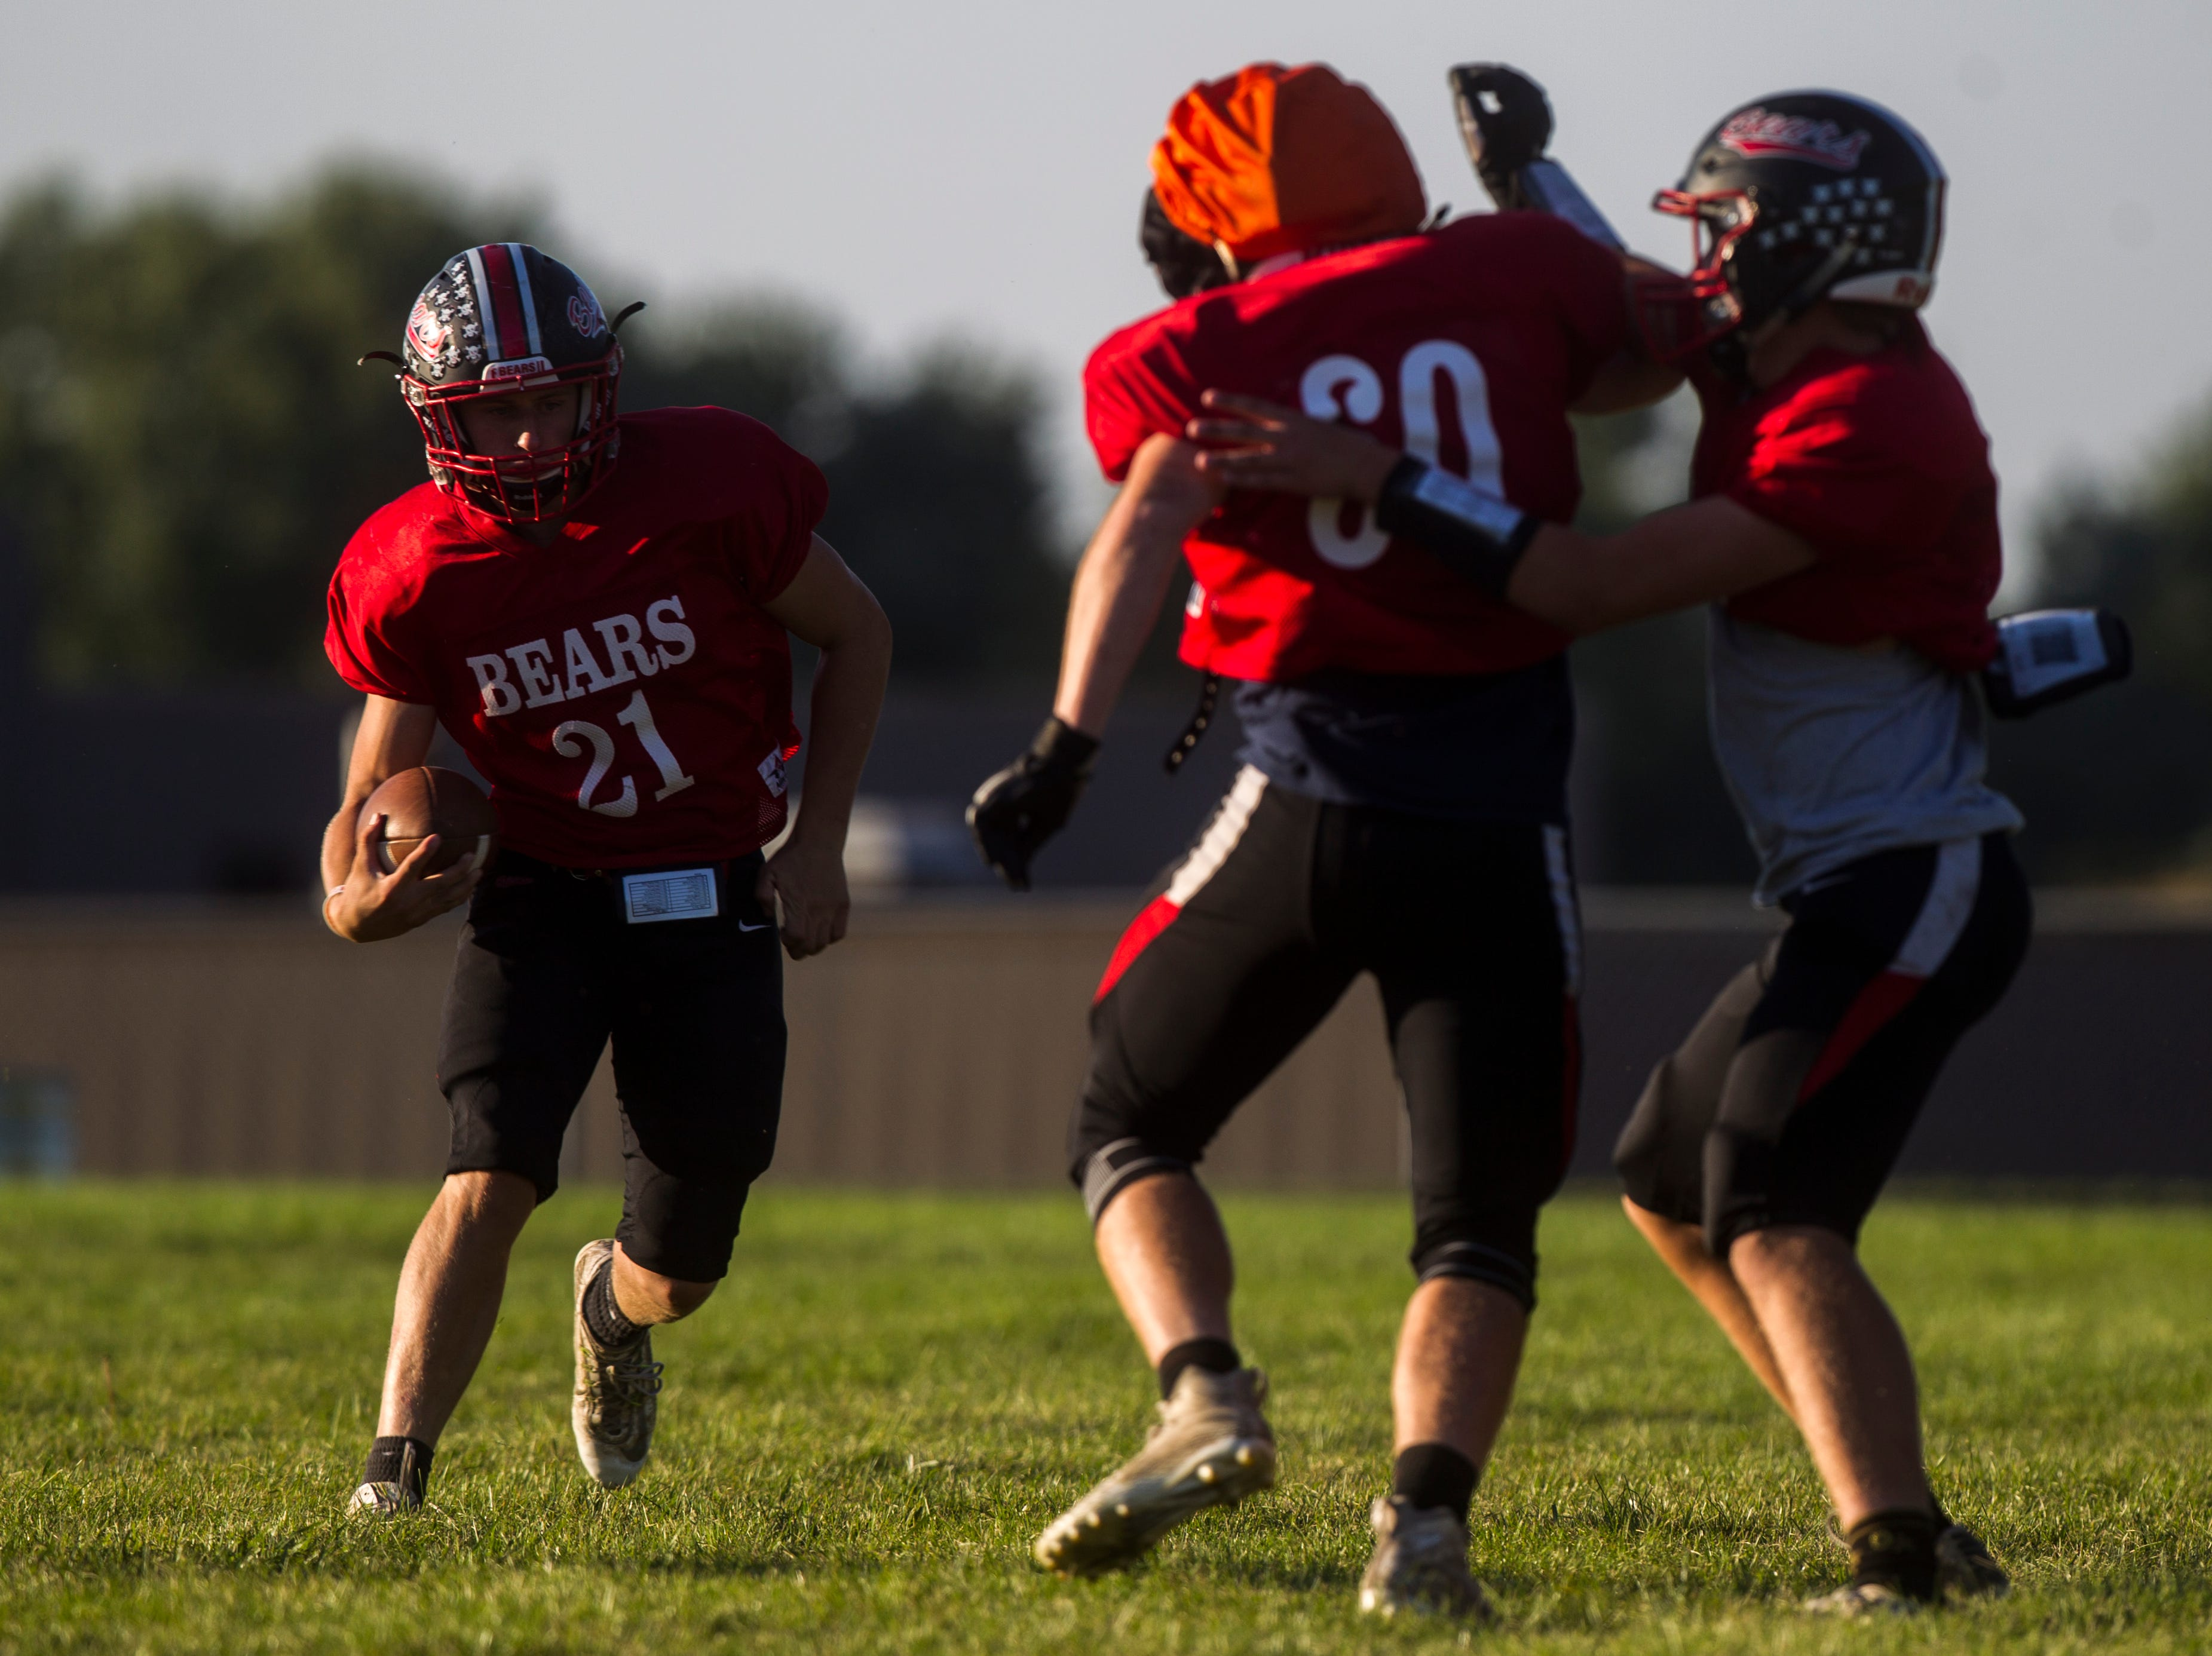 West Branch's Brett Schiele (21) jukes a defender during a varsity football practice on Tuesday, Sept. 11, 2018, at the West Branch High School practice field.